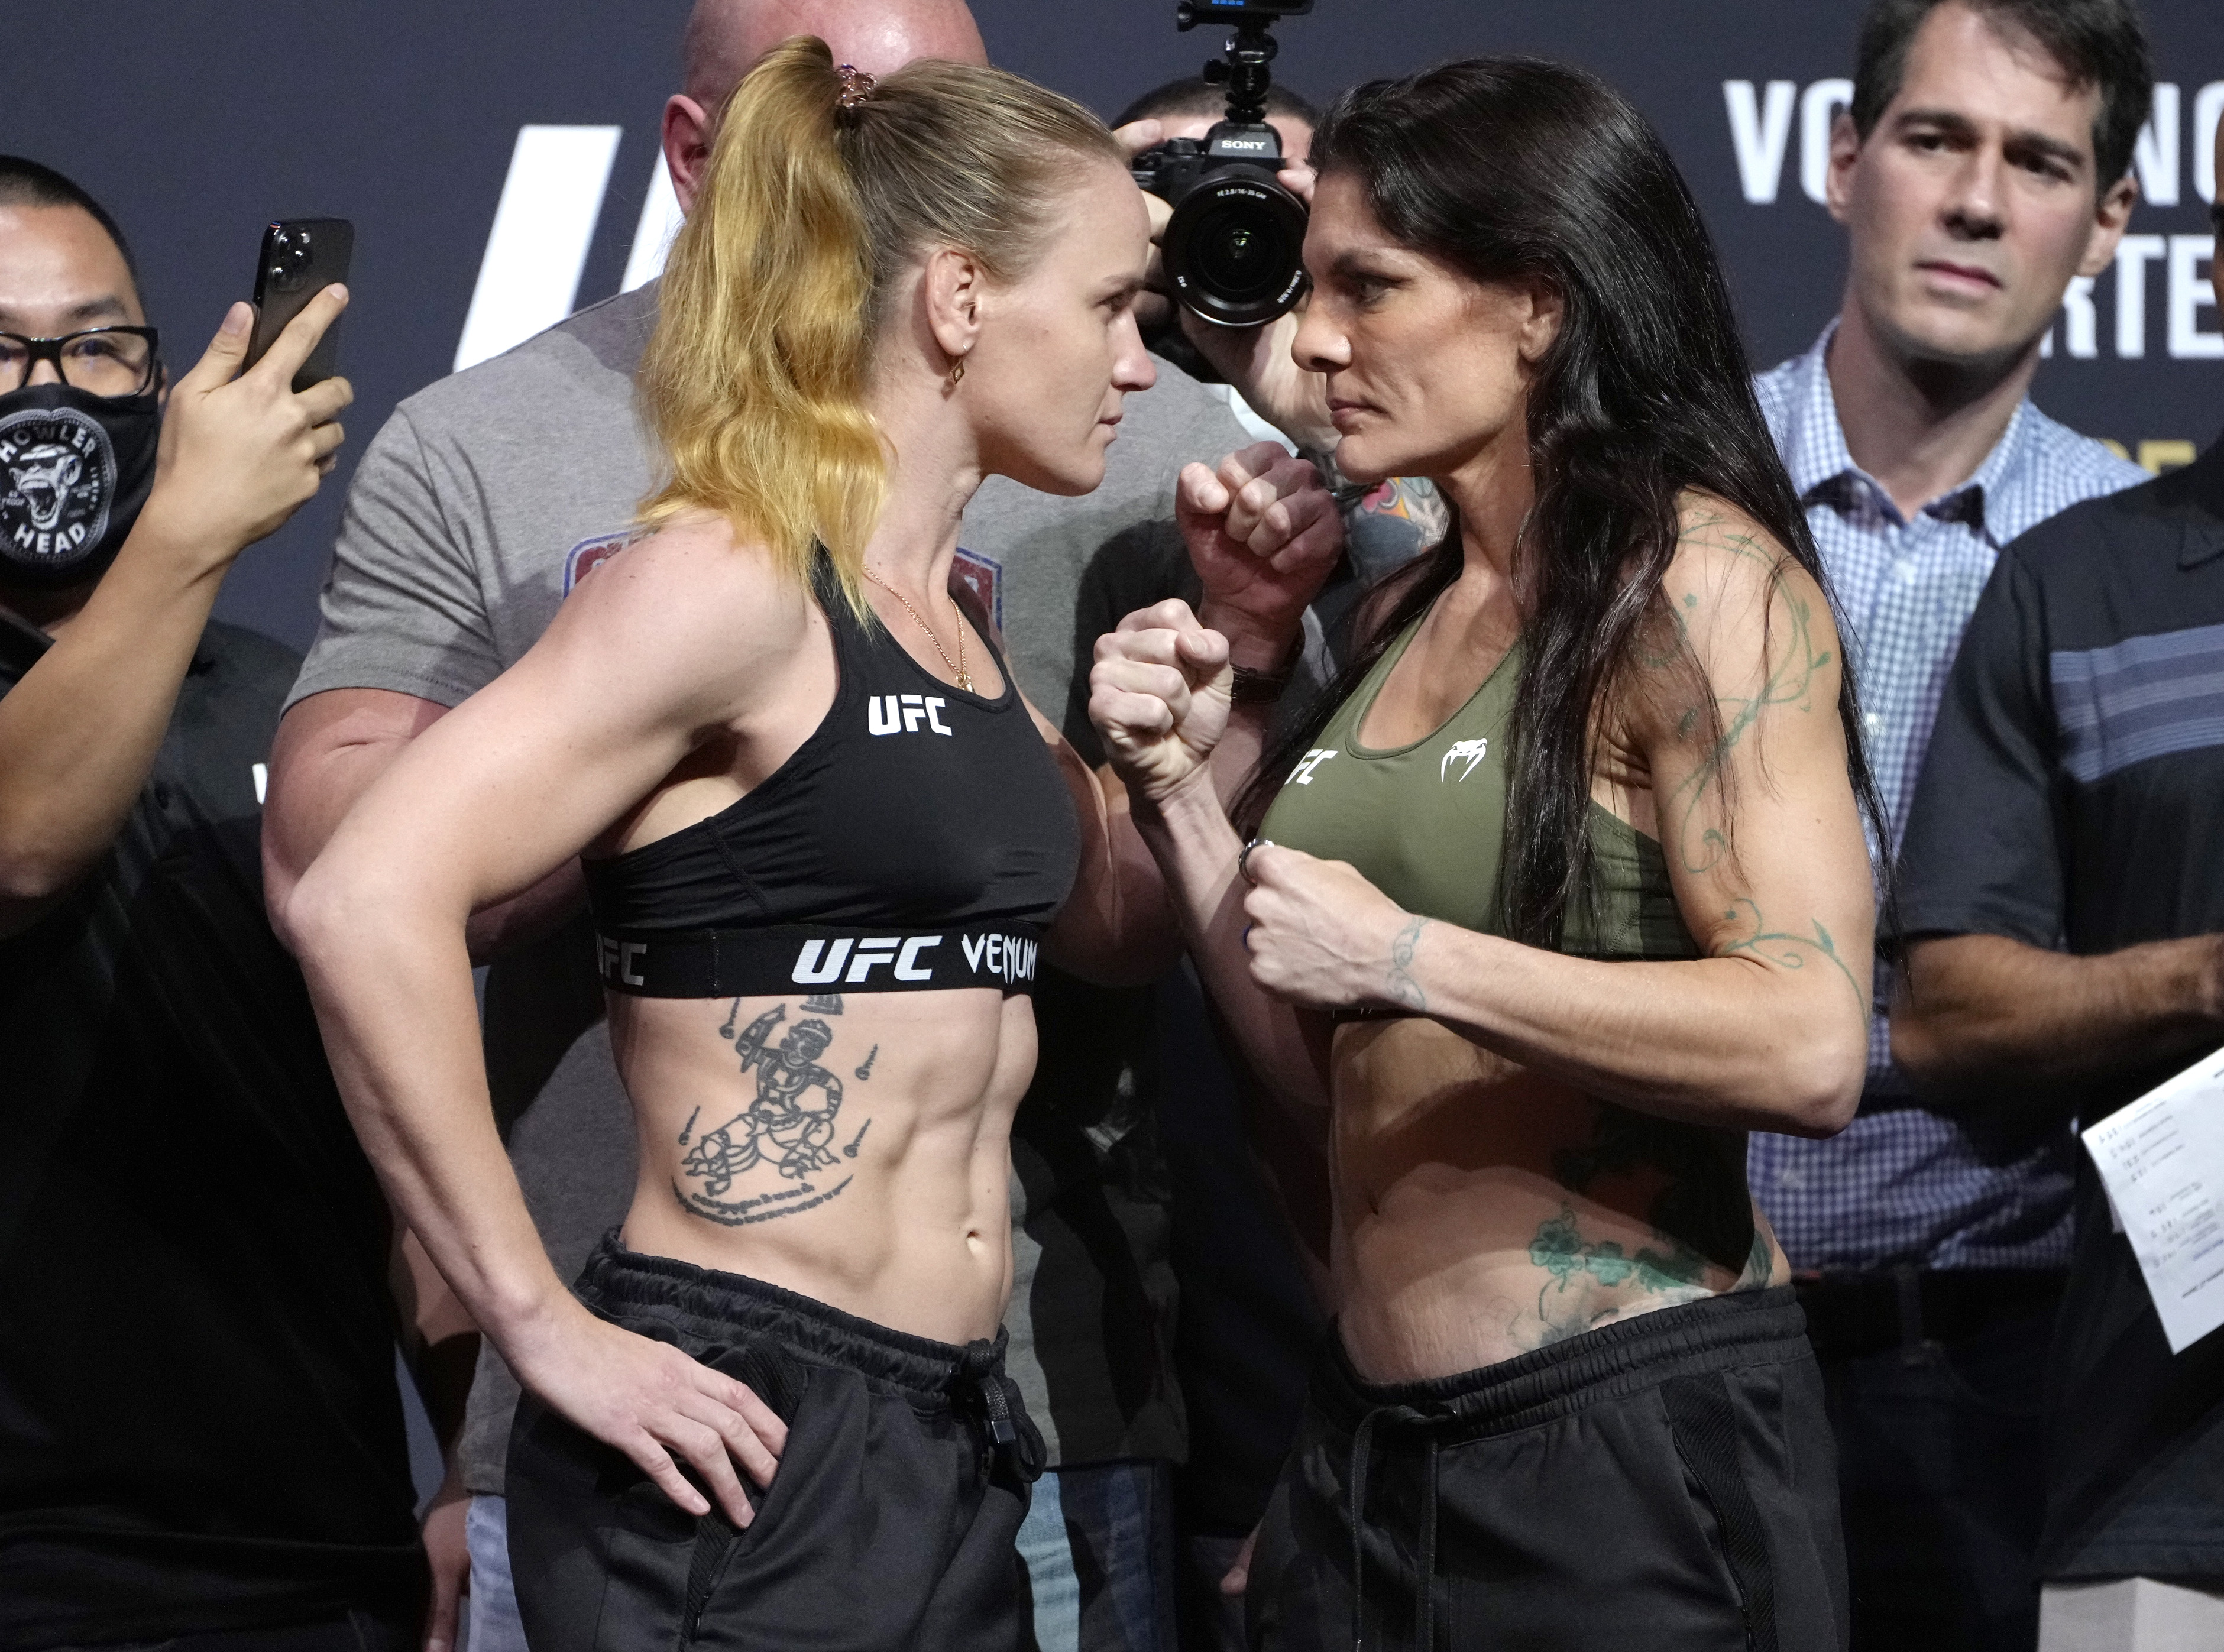 Opponents Valentina Shevchenko of Kyrgyzstan and Lauren Murphy face off during the UFC 266 ceremonial weigh-in at Park Theater on September 24, 2021 in Las Vegas, Nevada.